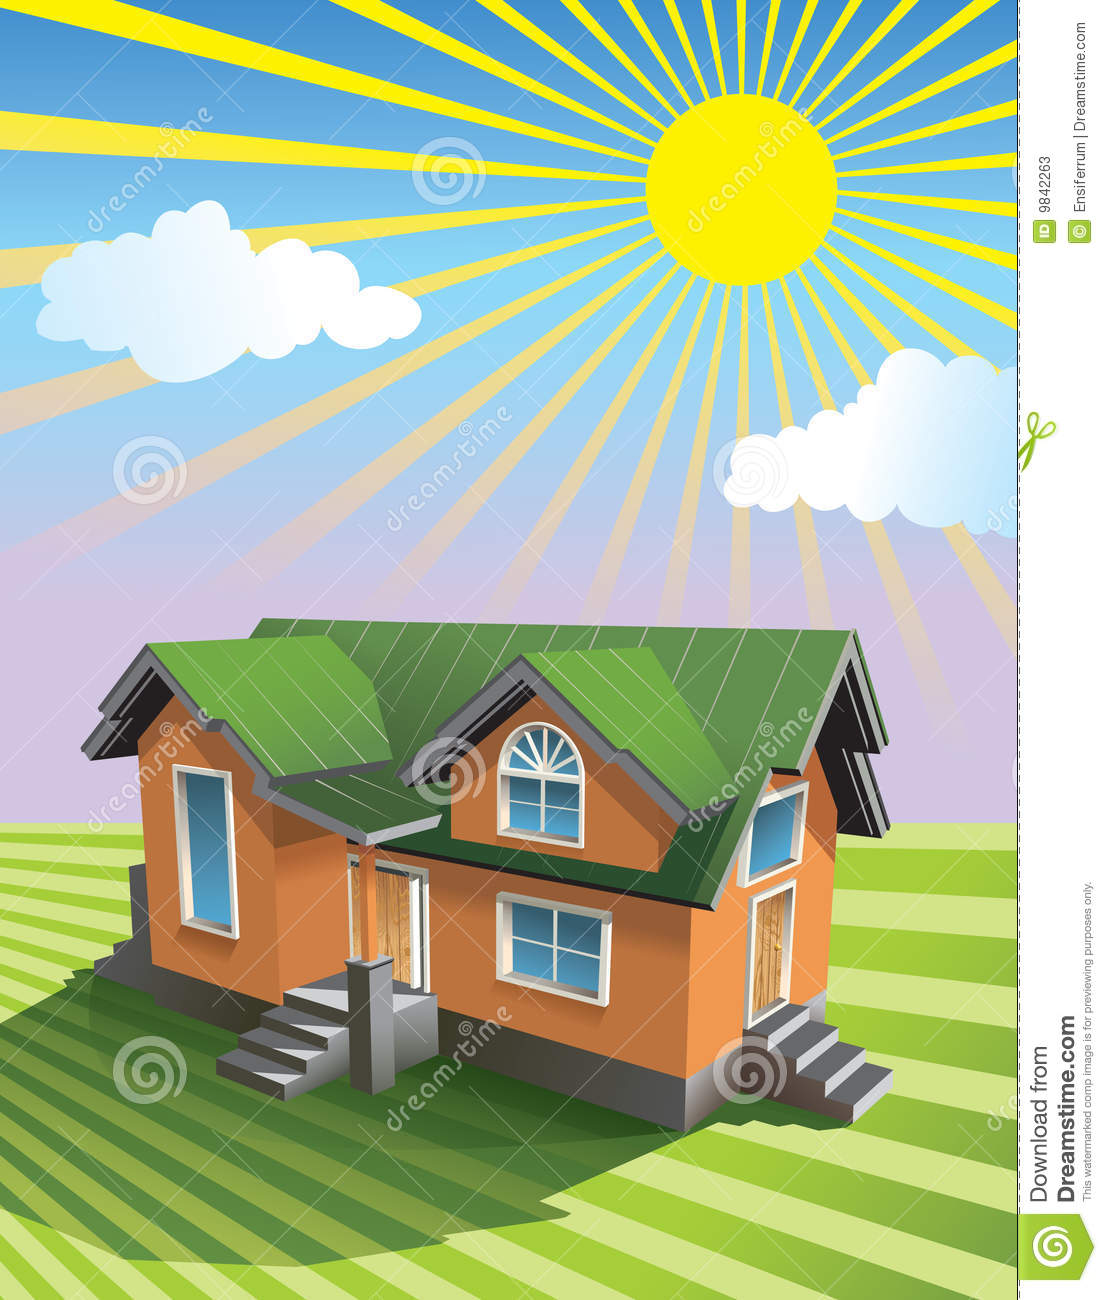 Pretty Small House Stock Vector Illustration Of Build 9842263